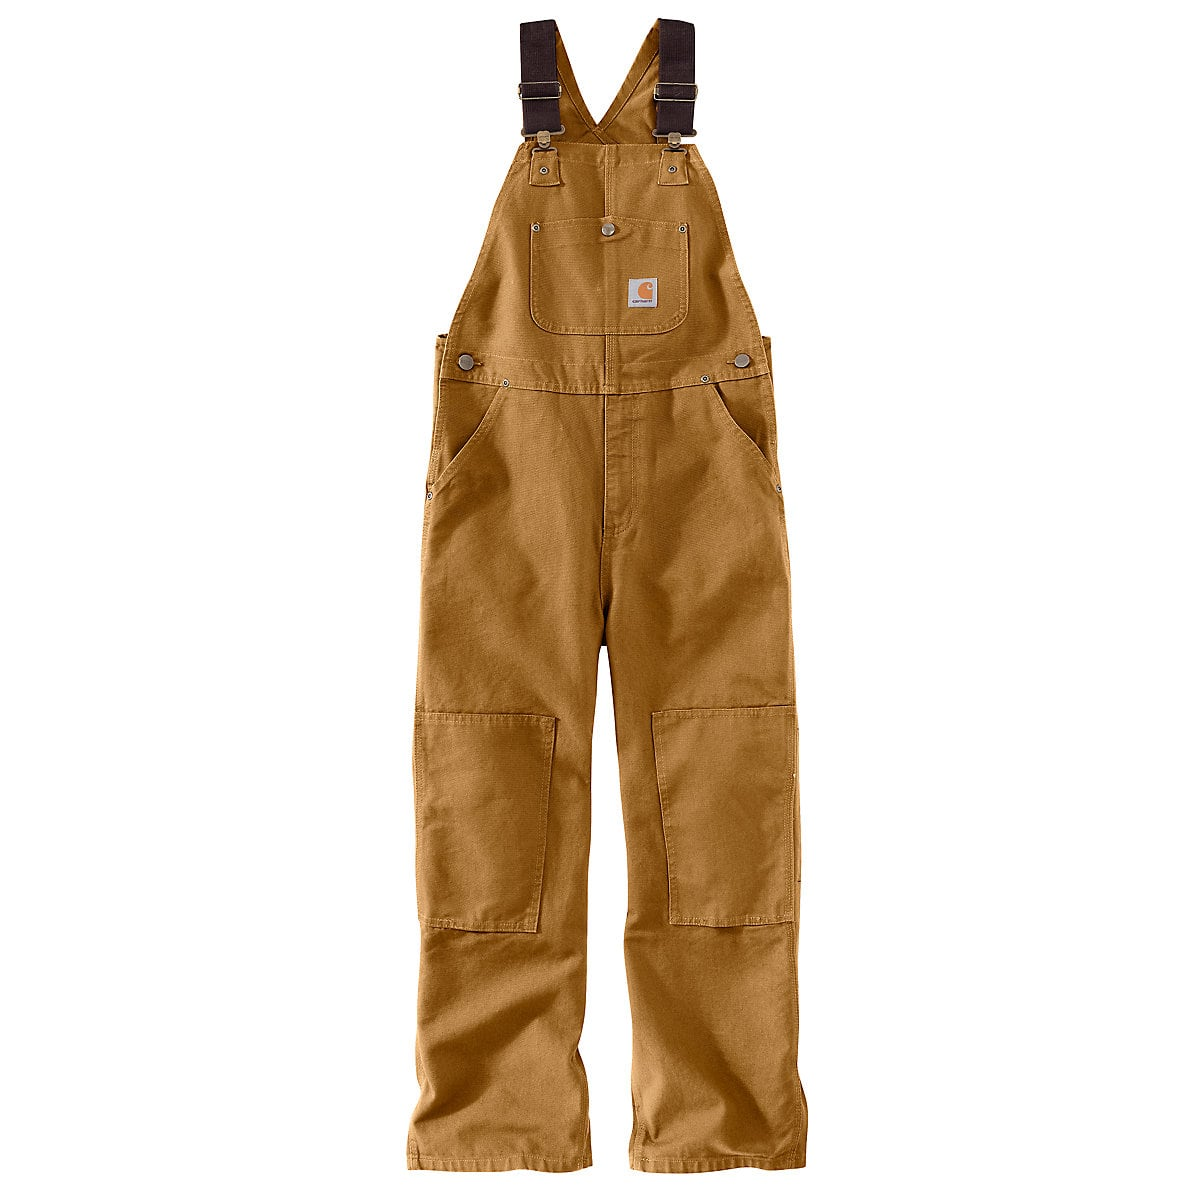 a02353c4992 Boys' Duck Washed Bib Overall Sizes 8-16 CM8601 | Carhartt